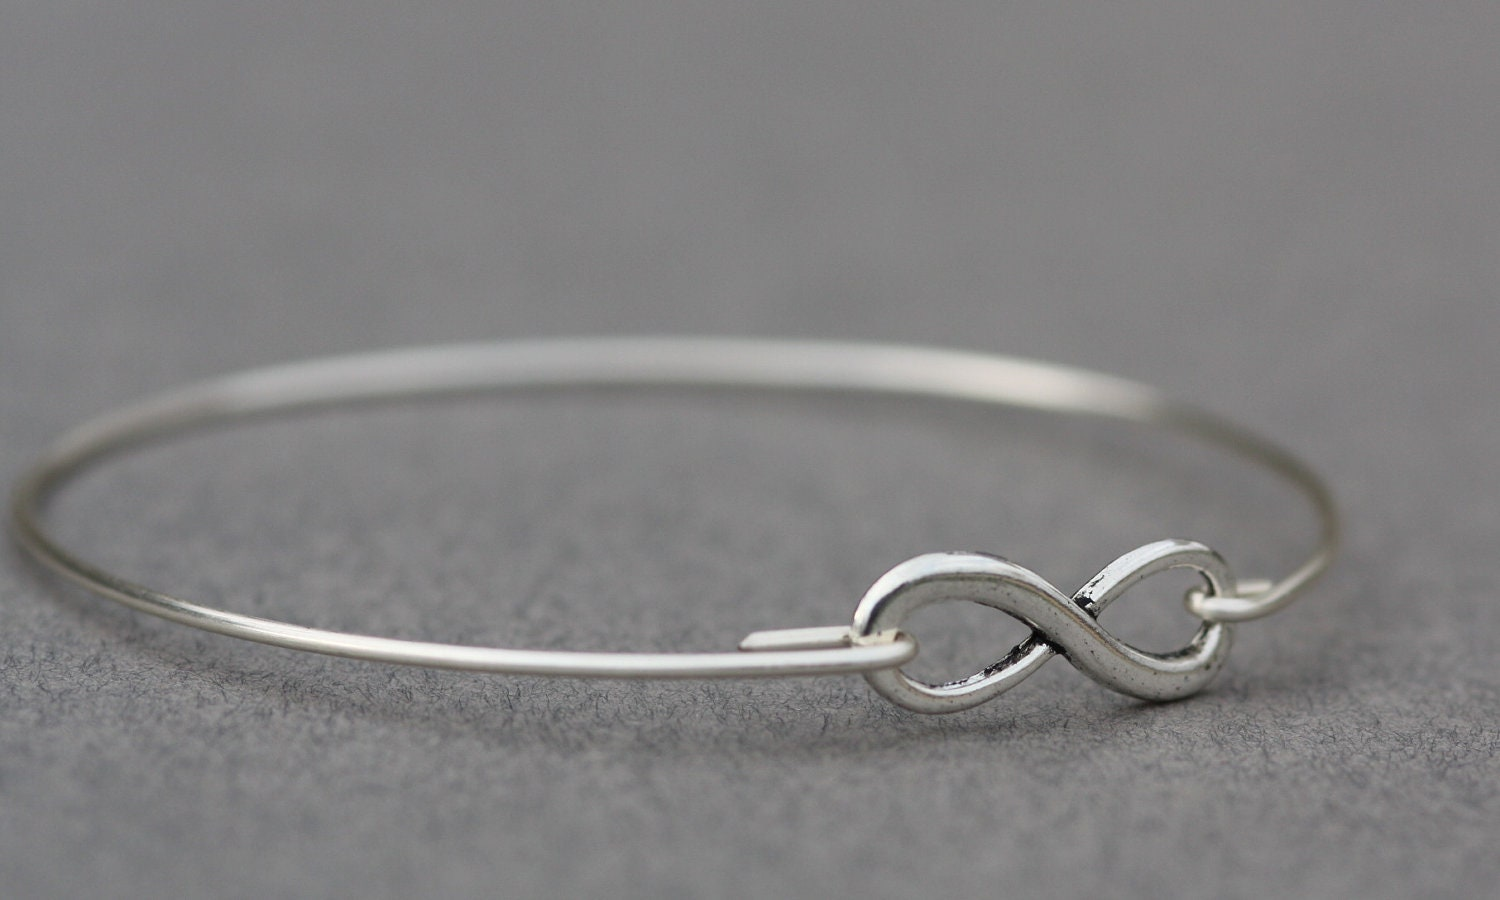 Sale Today Infinity Silver Bangle Bracelet Infinity Silver. Cz Eternity Band. Funky Engagement Rings. Mercier Watches. Citrine Engagement Rings. Custom Bangle Bracelet. Mens Black Necklace. Solitaire Engagement Ring Platinum. New Rings